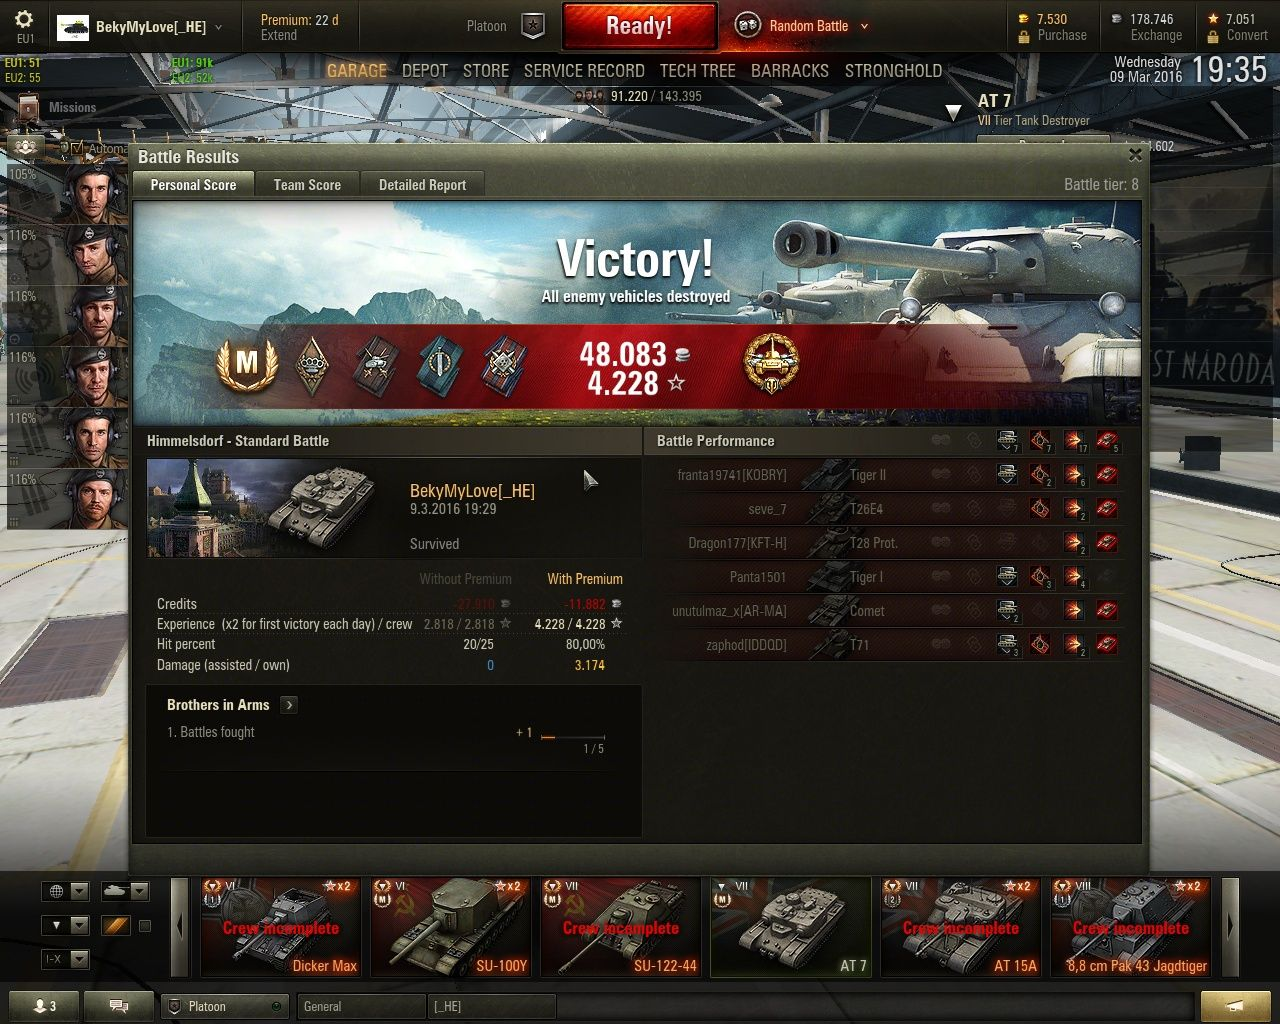 Victory Himmelsdorf At 7 Experience Received 4 228 X2 48 083 Battle Achievements High Caliber Mastery Badg World Of Tanks War Thunder Victorious